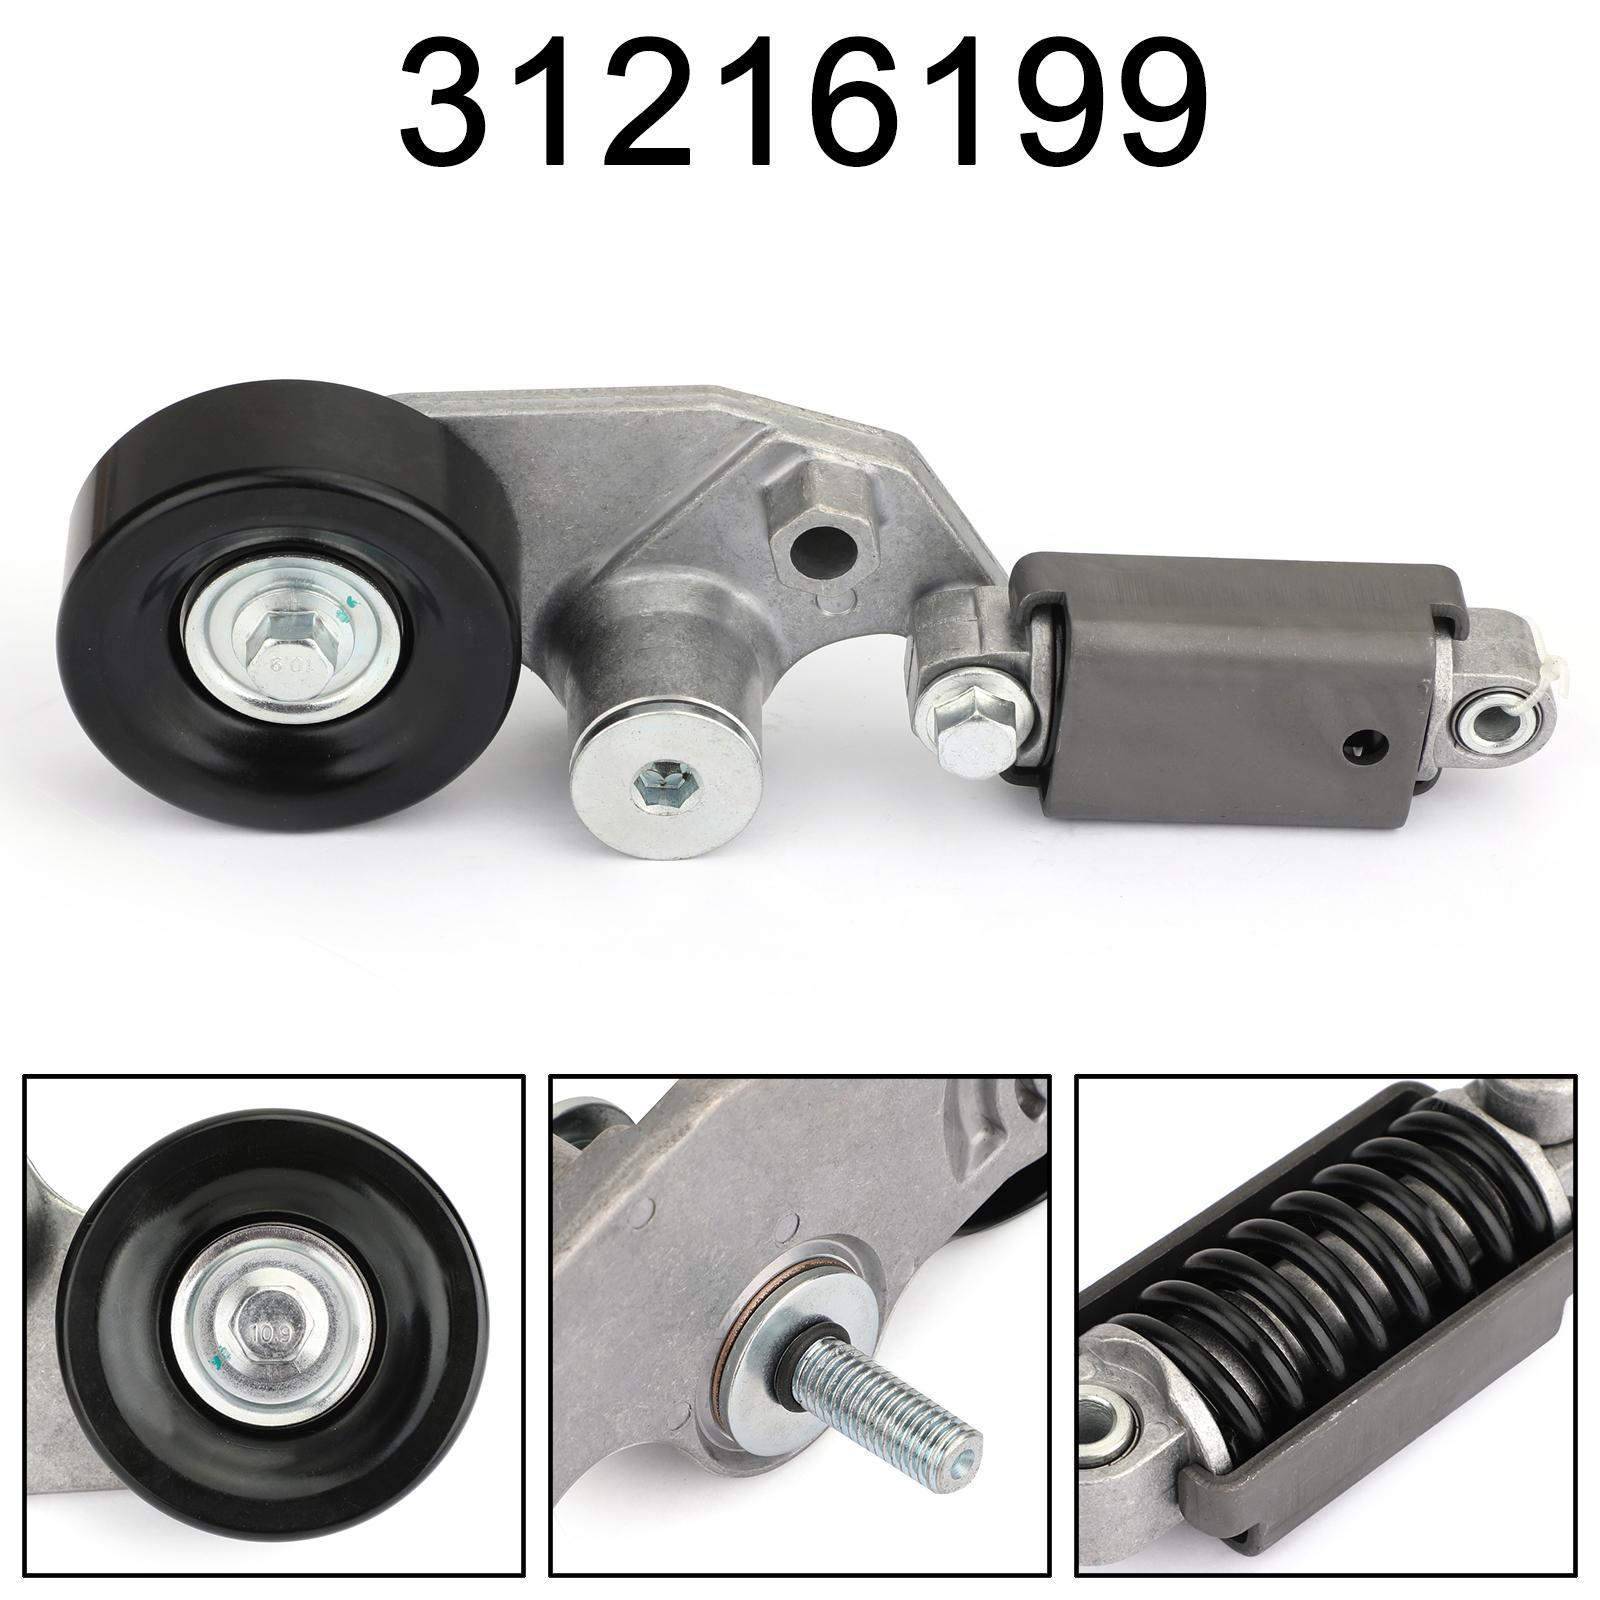 Areyourshop Car New Accessory Belt Tensioner For Volvo S80 Xc90 2005 -2011 31216199 15657148 Car Accessories Parts